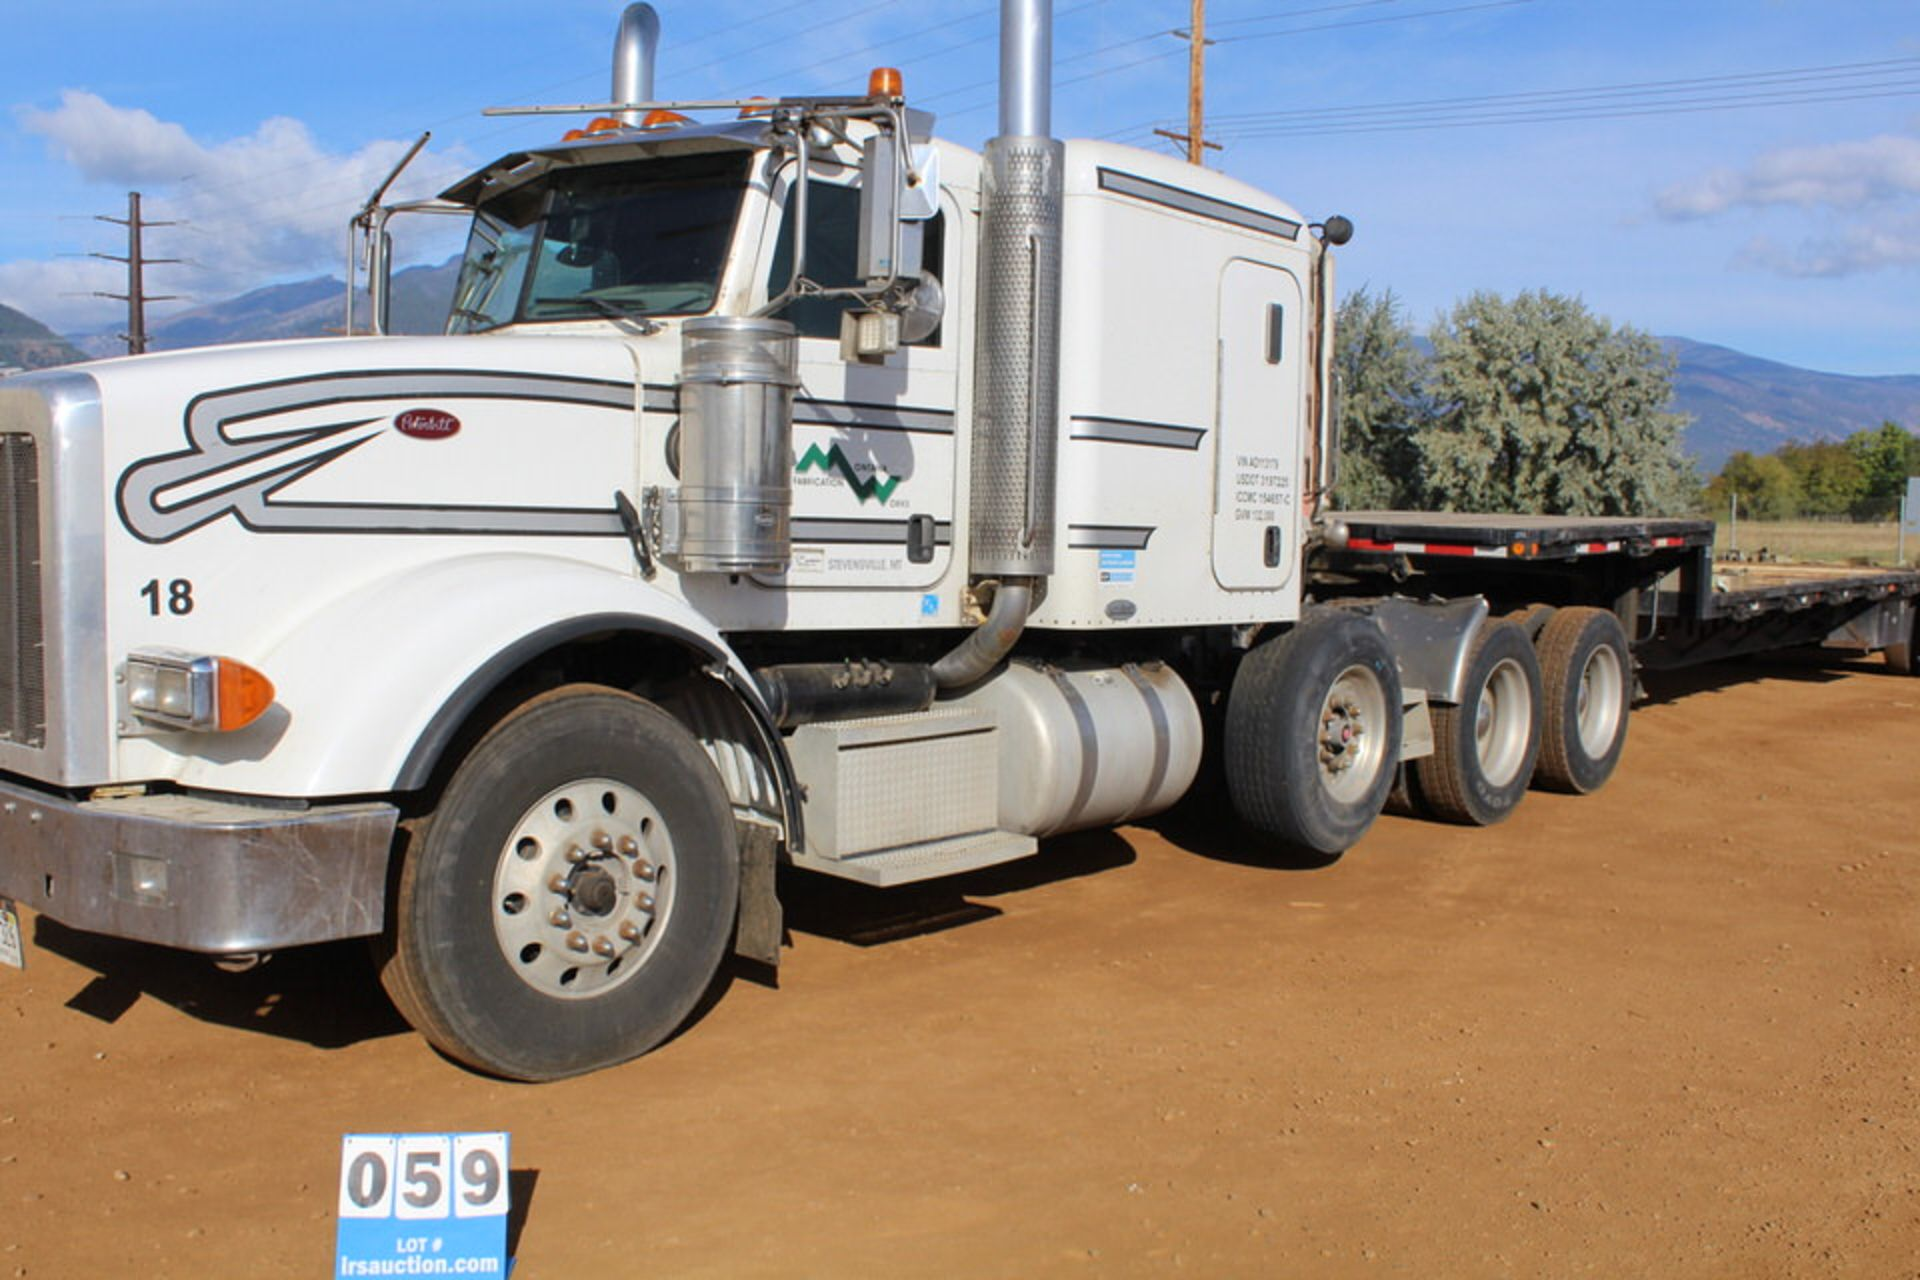 Lot 59 - 2009 PETERBILT 367 TRI-AXEL TRACTOR W/ DROP AXEL, SLEEPER CAB, CUMMINGS SX525 DIESEL ENGINE, EATON